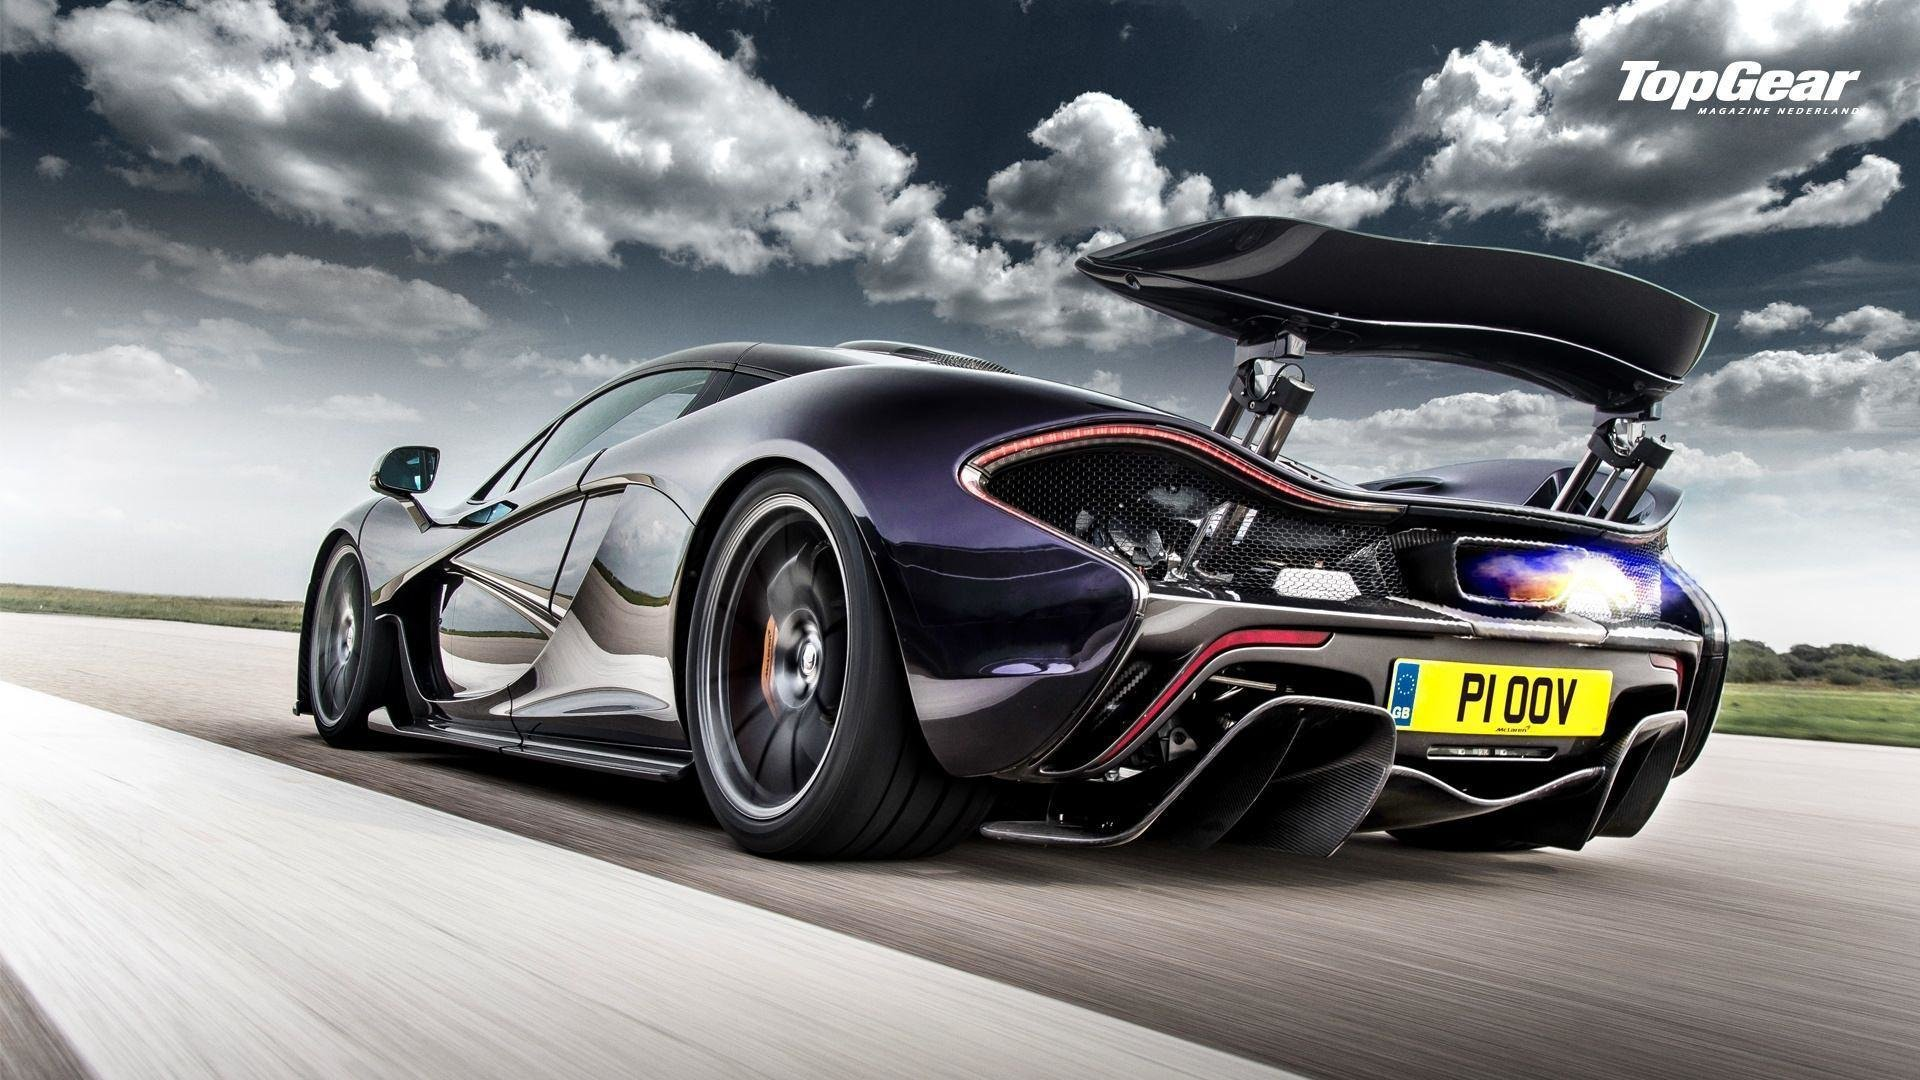 Latest Mclaren P1 Wallpapers Wallpaper Cave Free Download